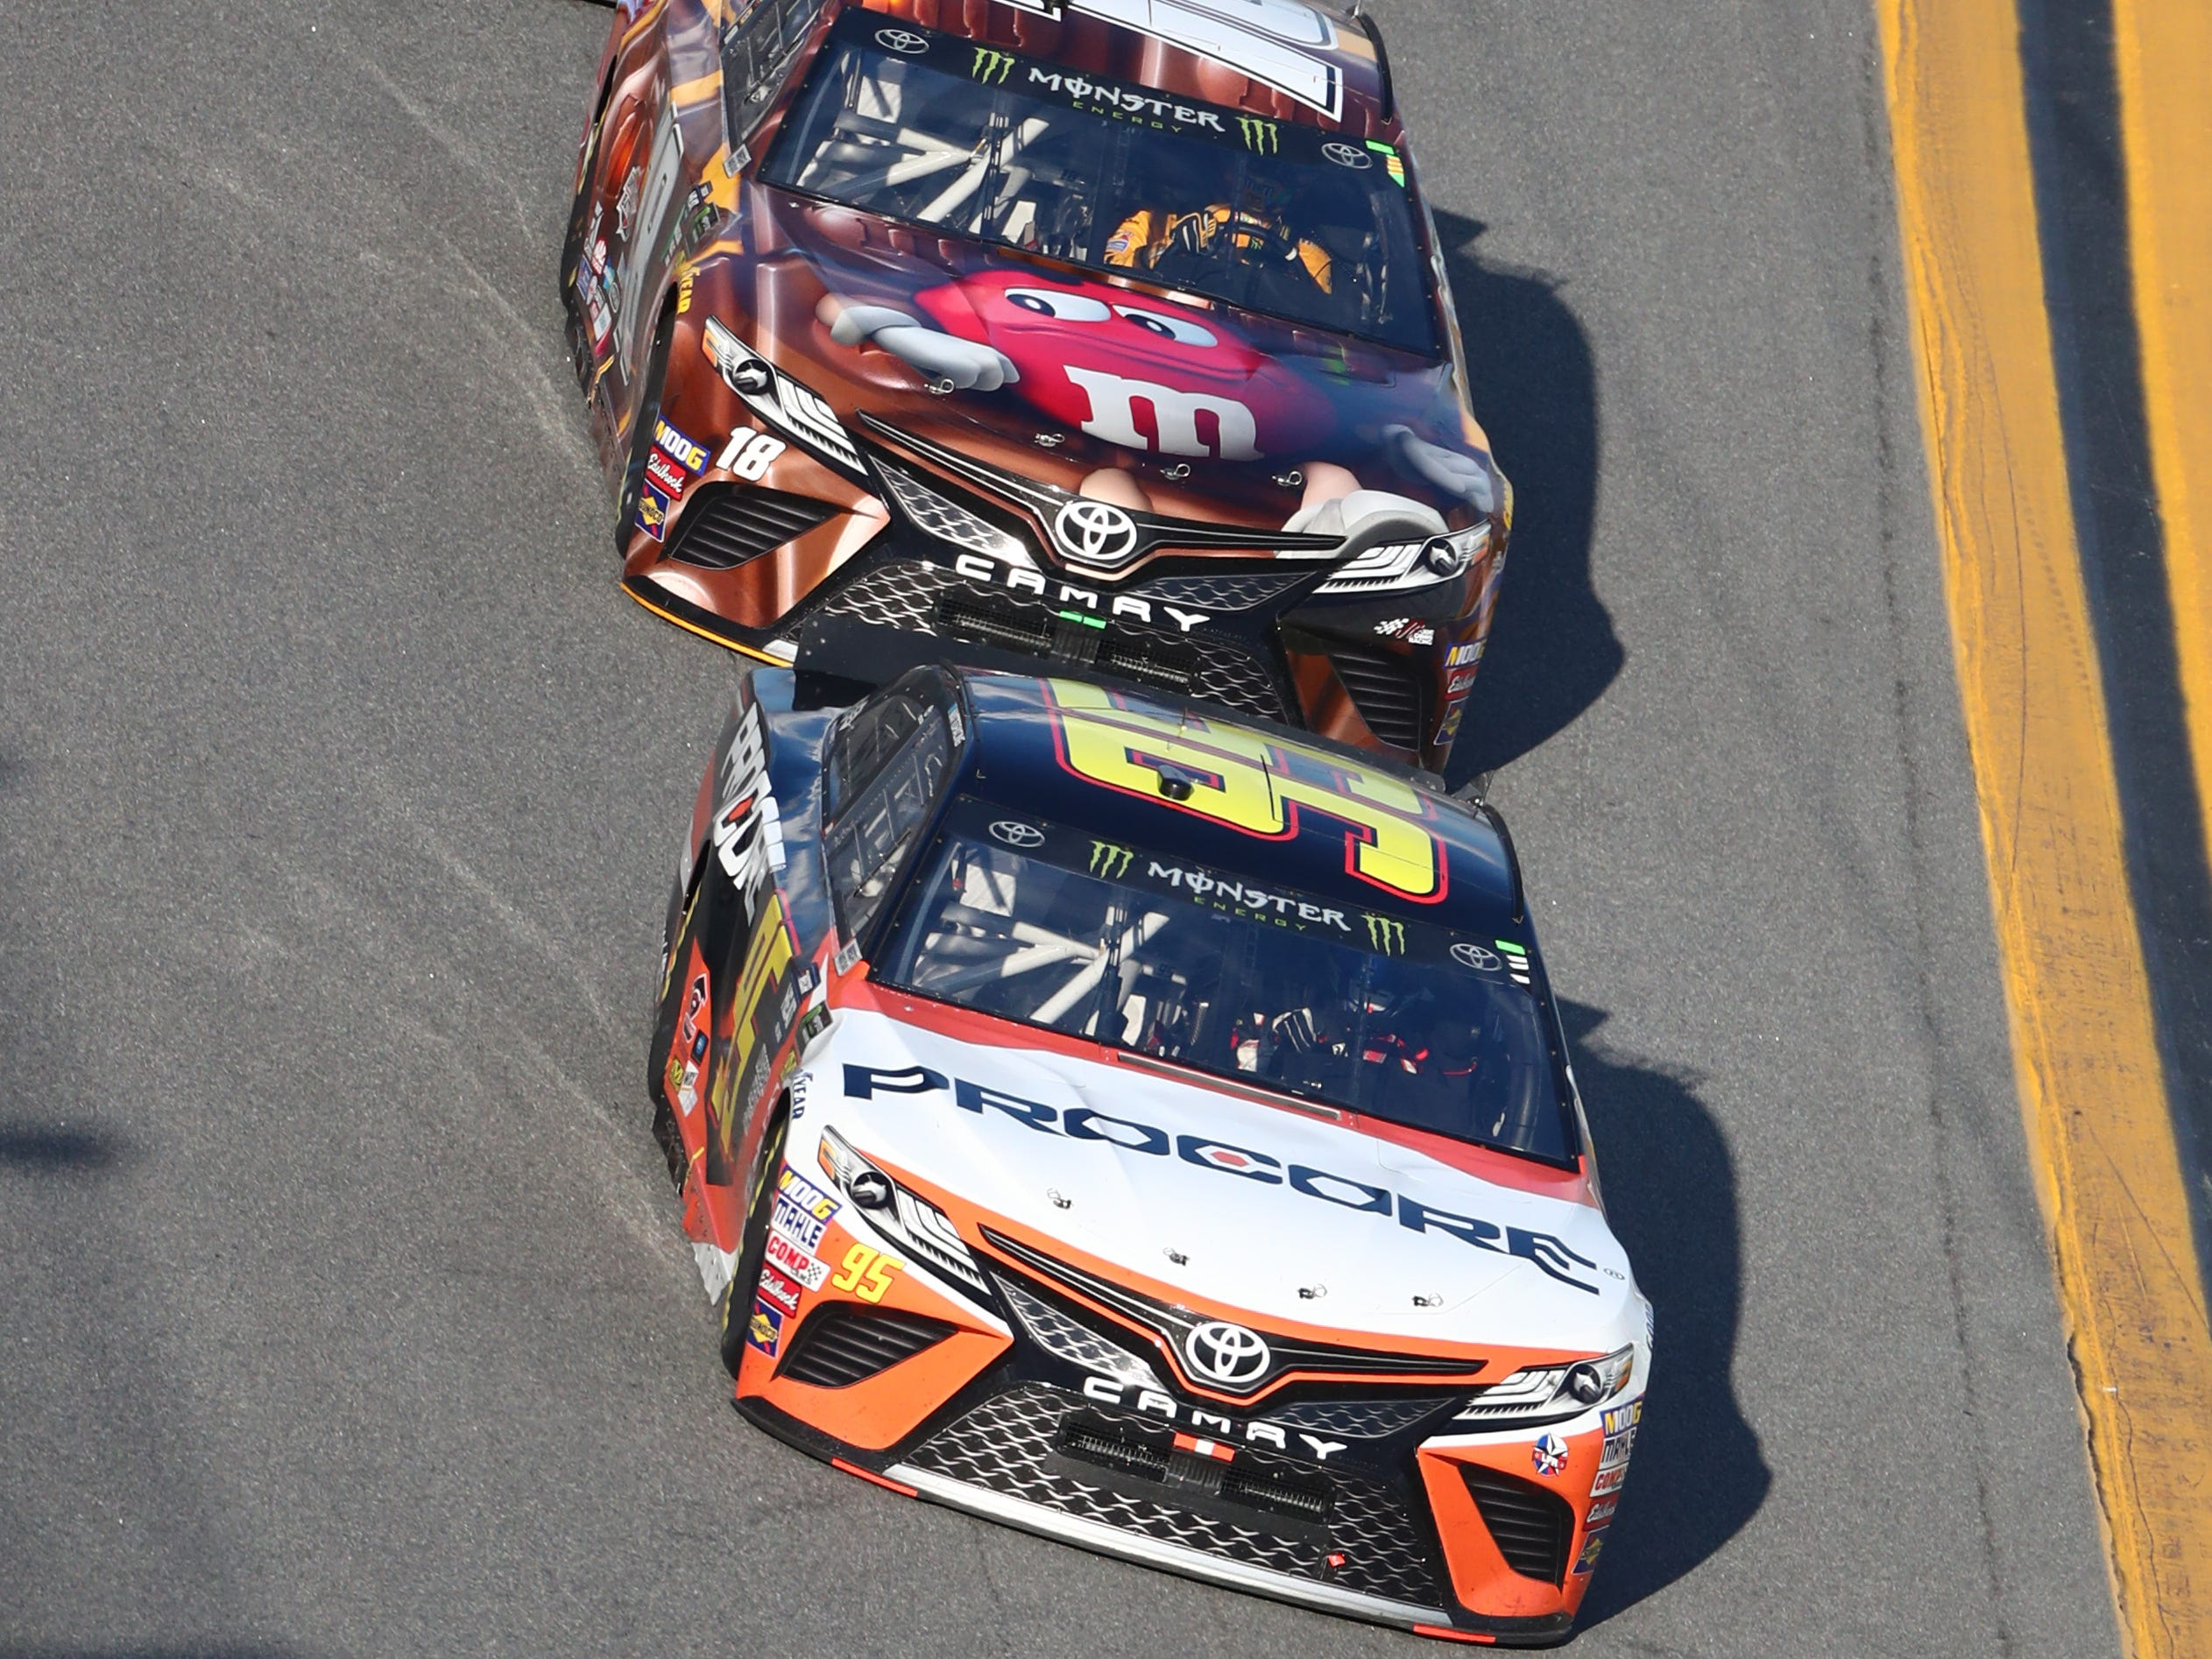 NASCAR Cup Series driver Matt Dibenedetto (95) leads Kyle Busch (18) and Alex Bowman (88) during the Daytona 500 at Daytona International Speedway.